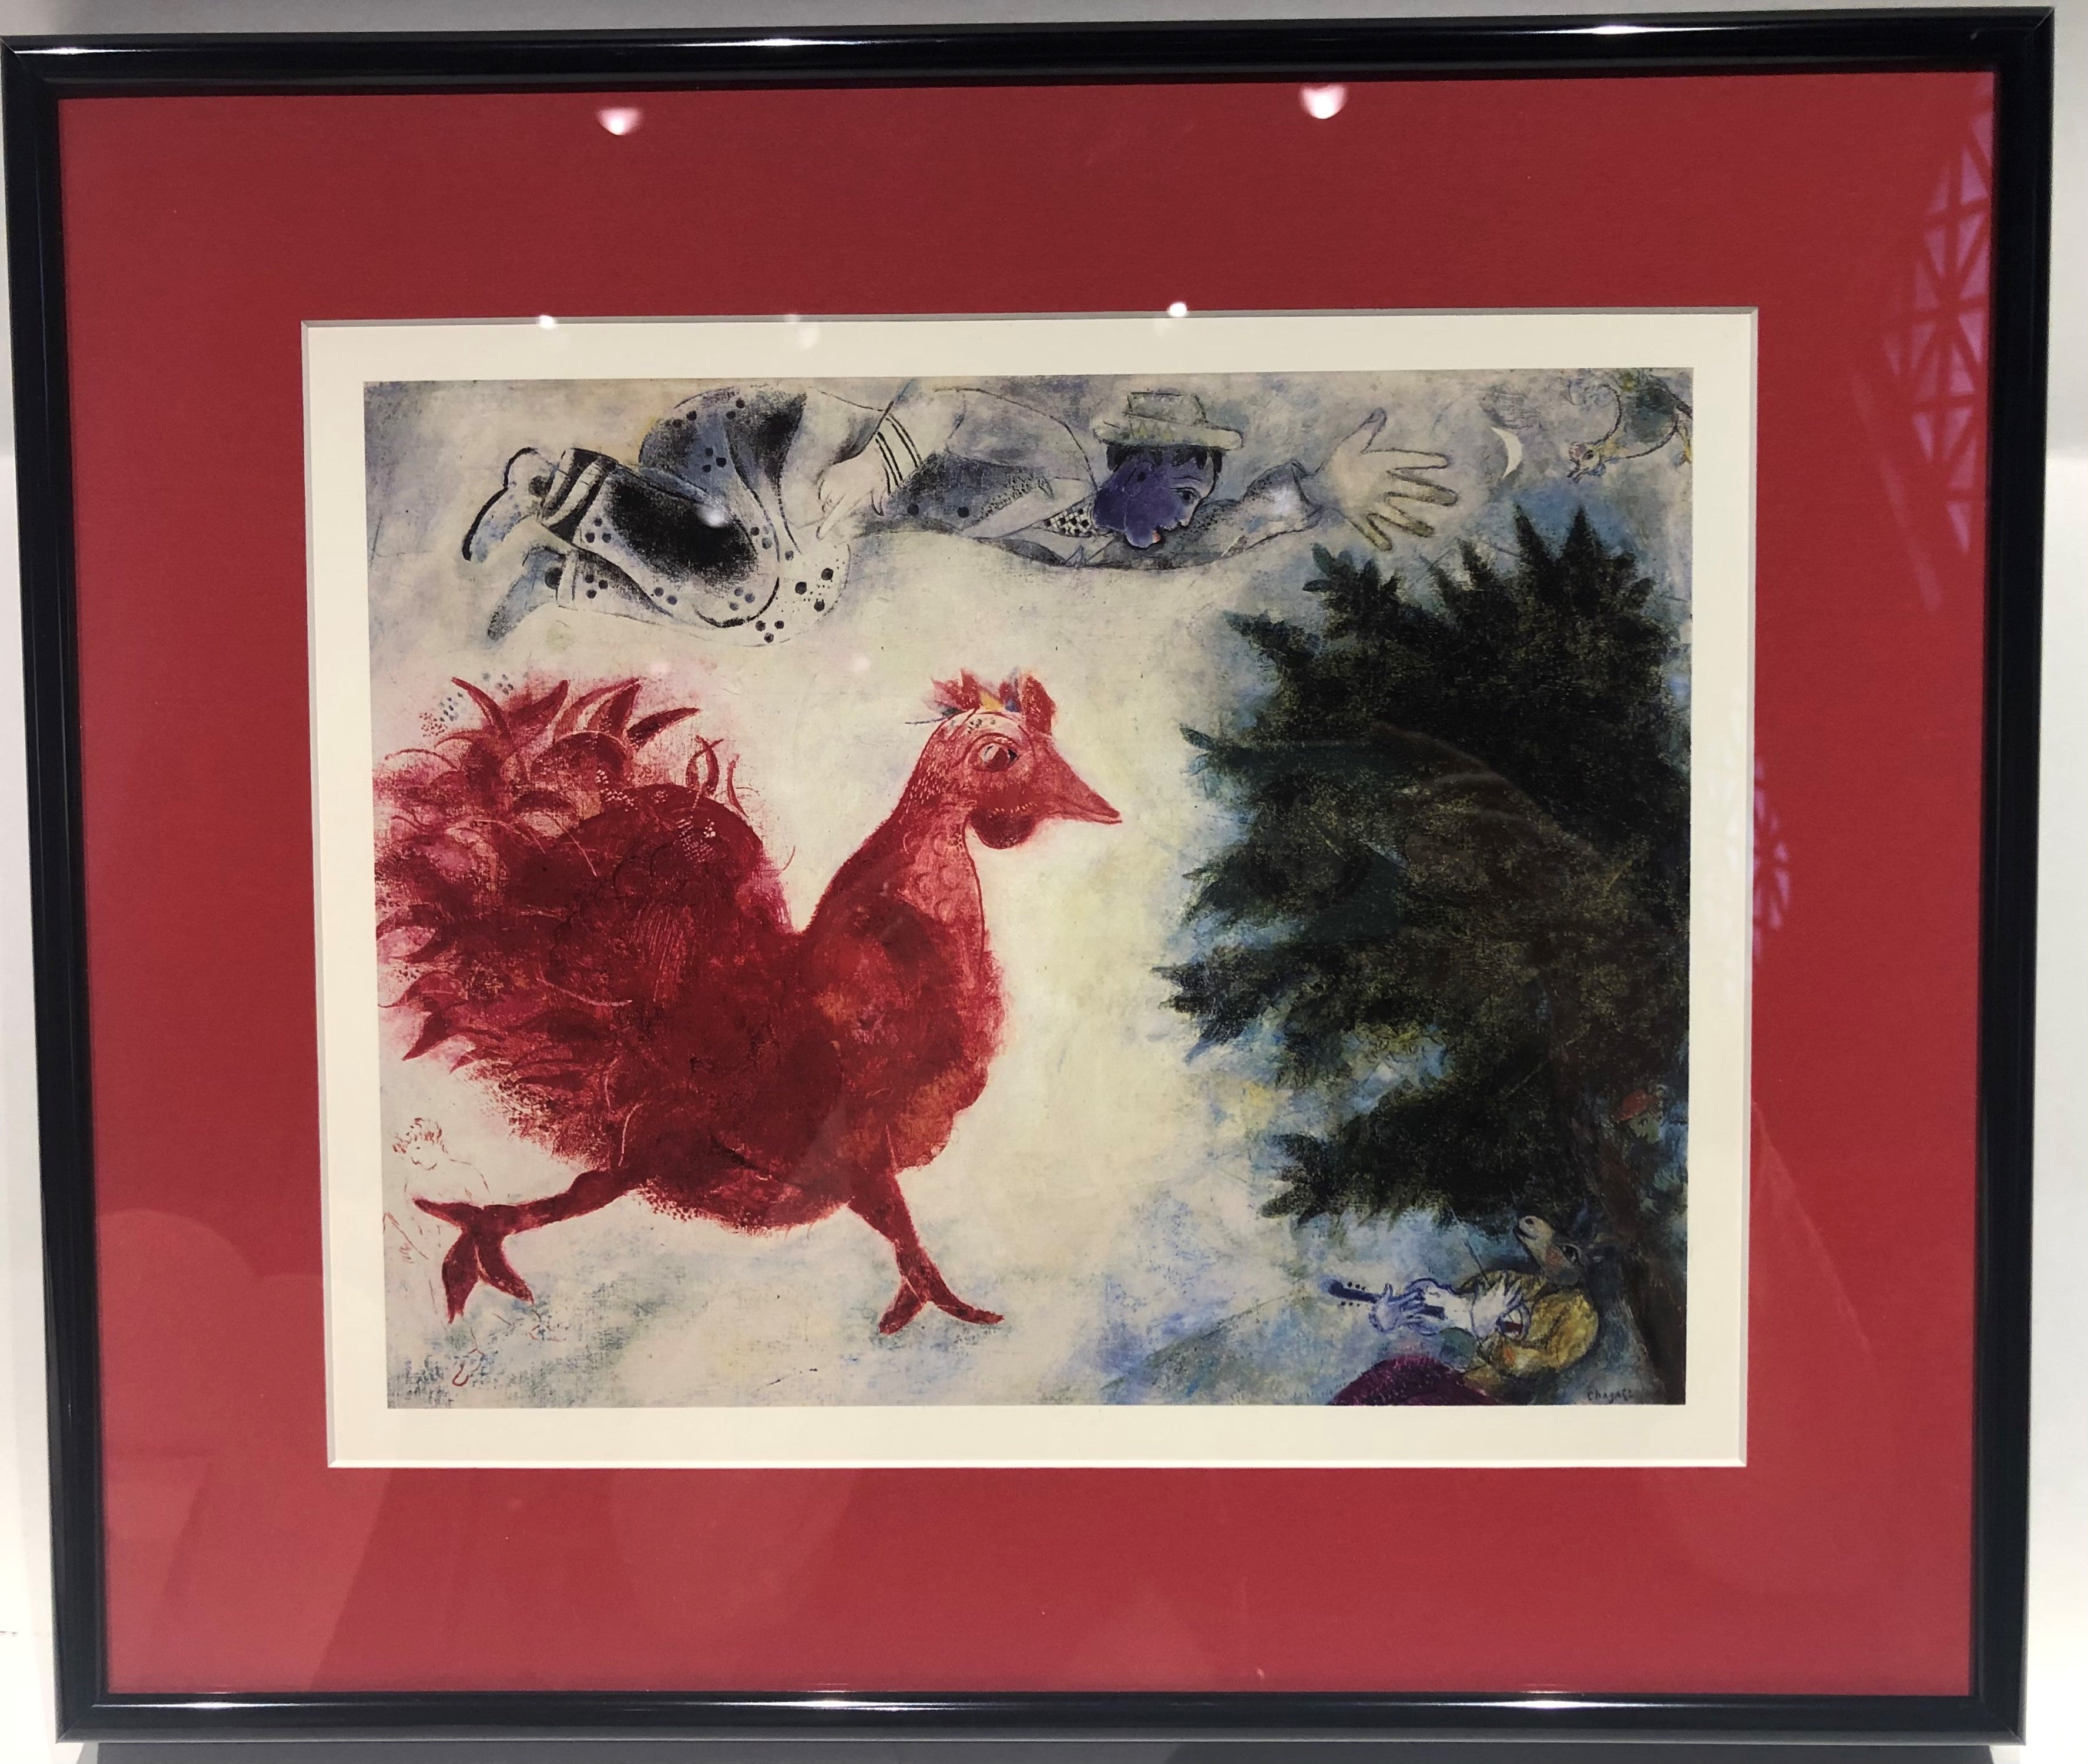 The Red Rooster by Chagall Framed